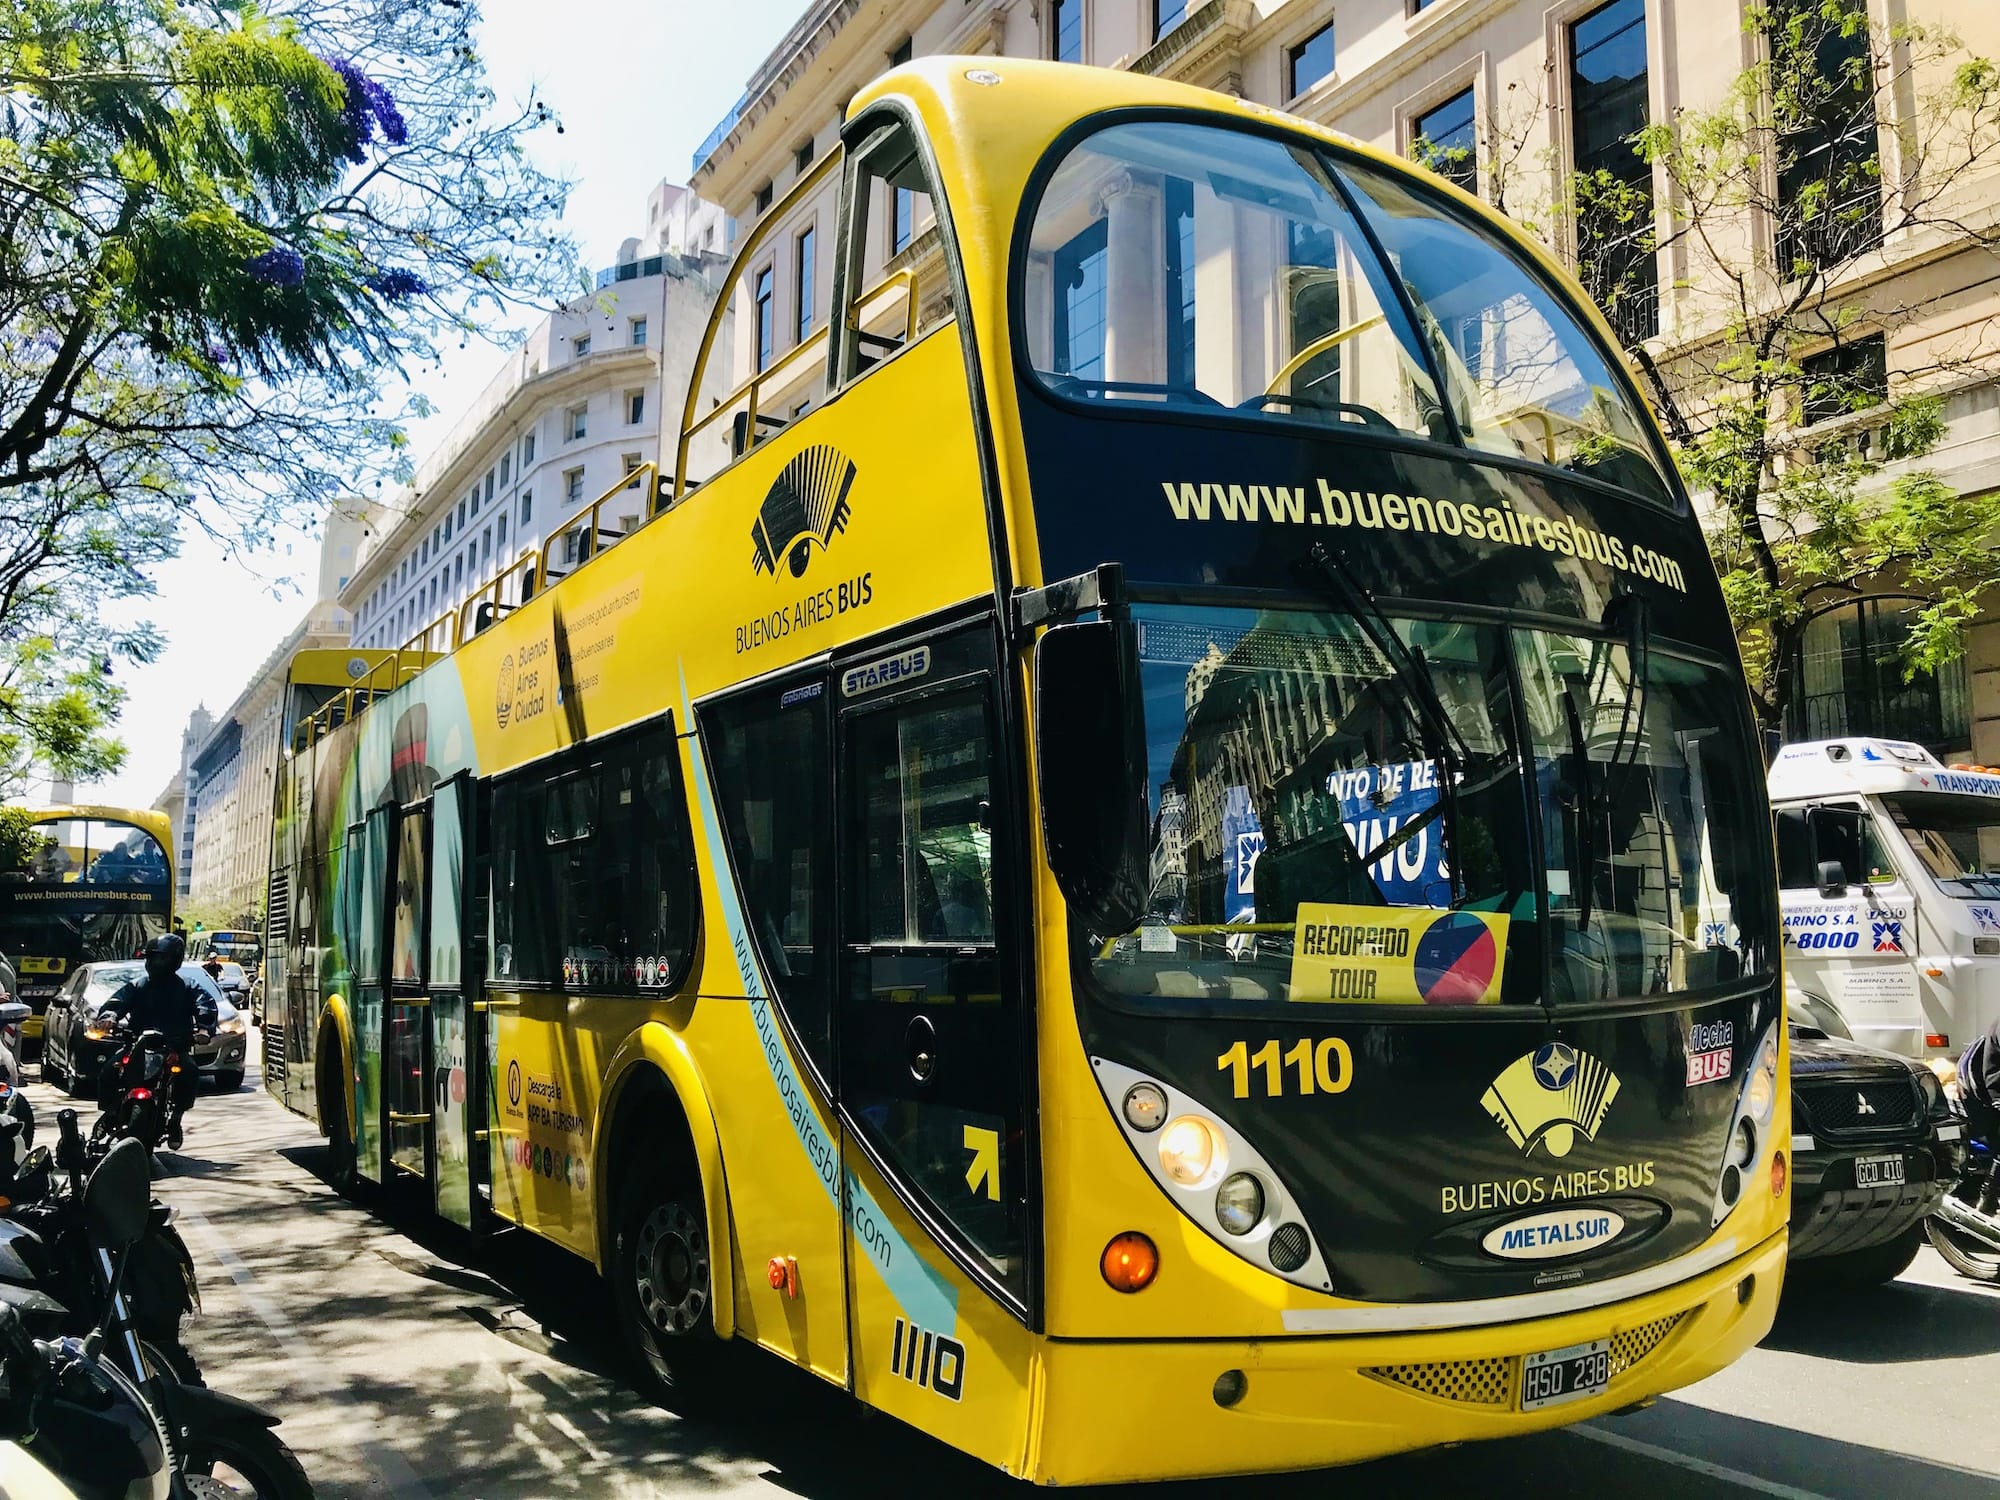 Hop on hop off Buenos Aires bus